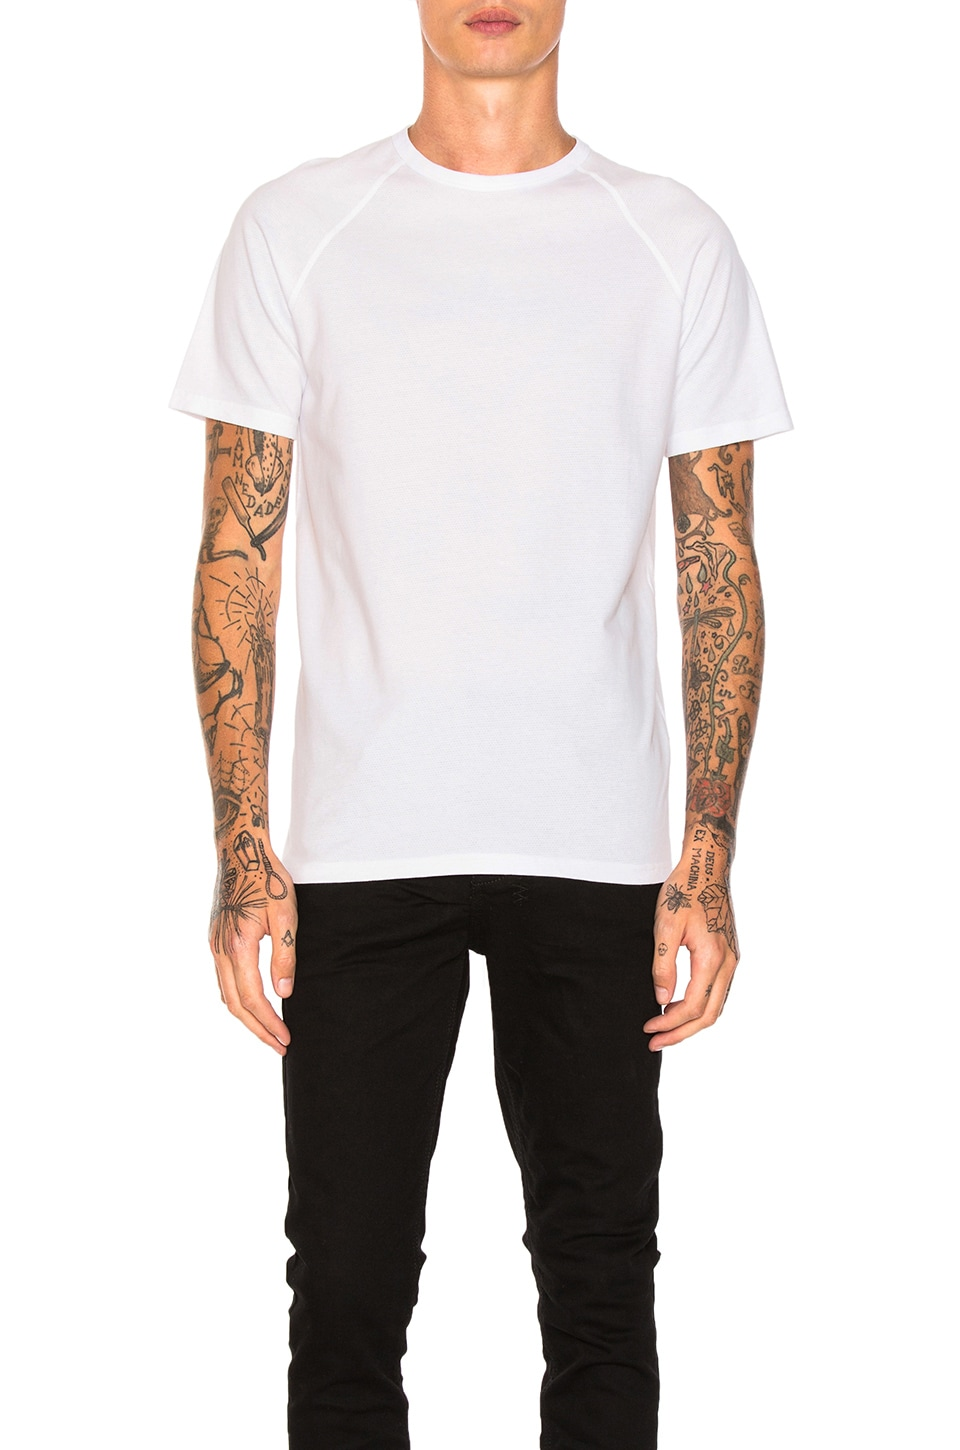 Raglan Tee by Reigning Champ